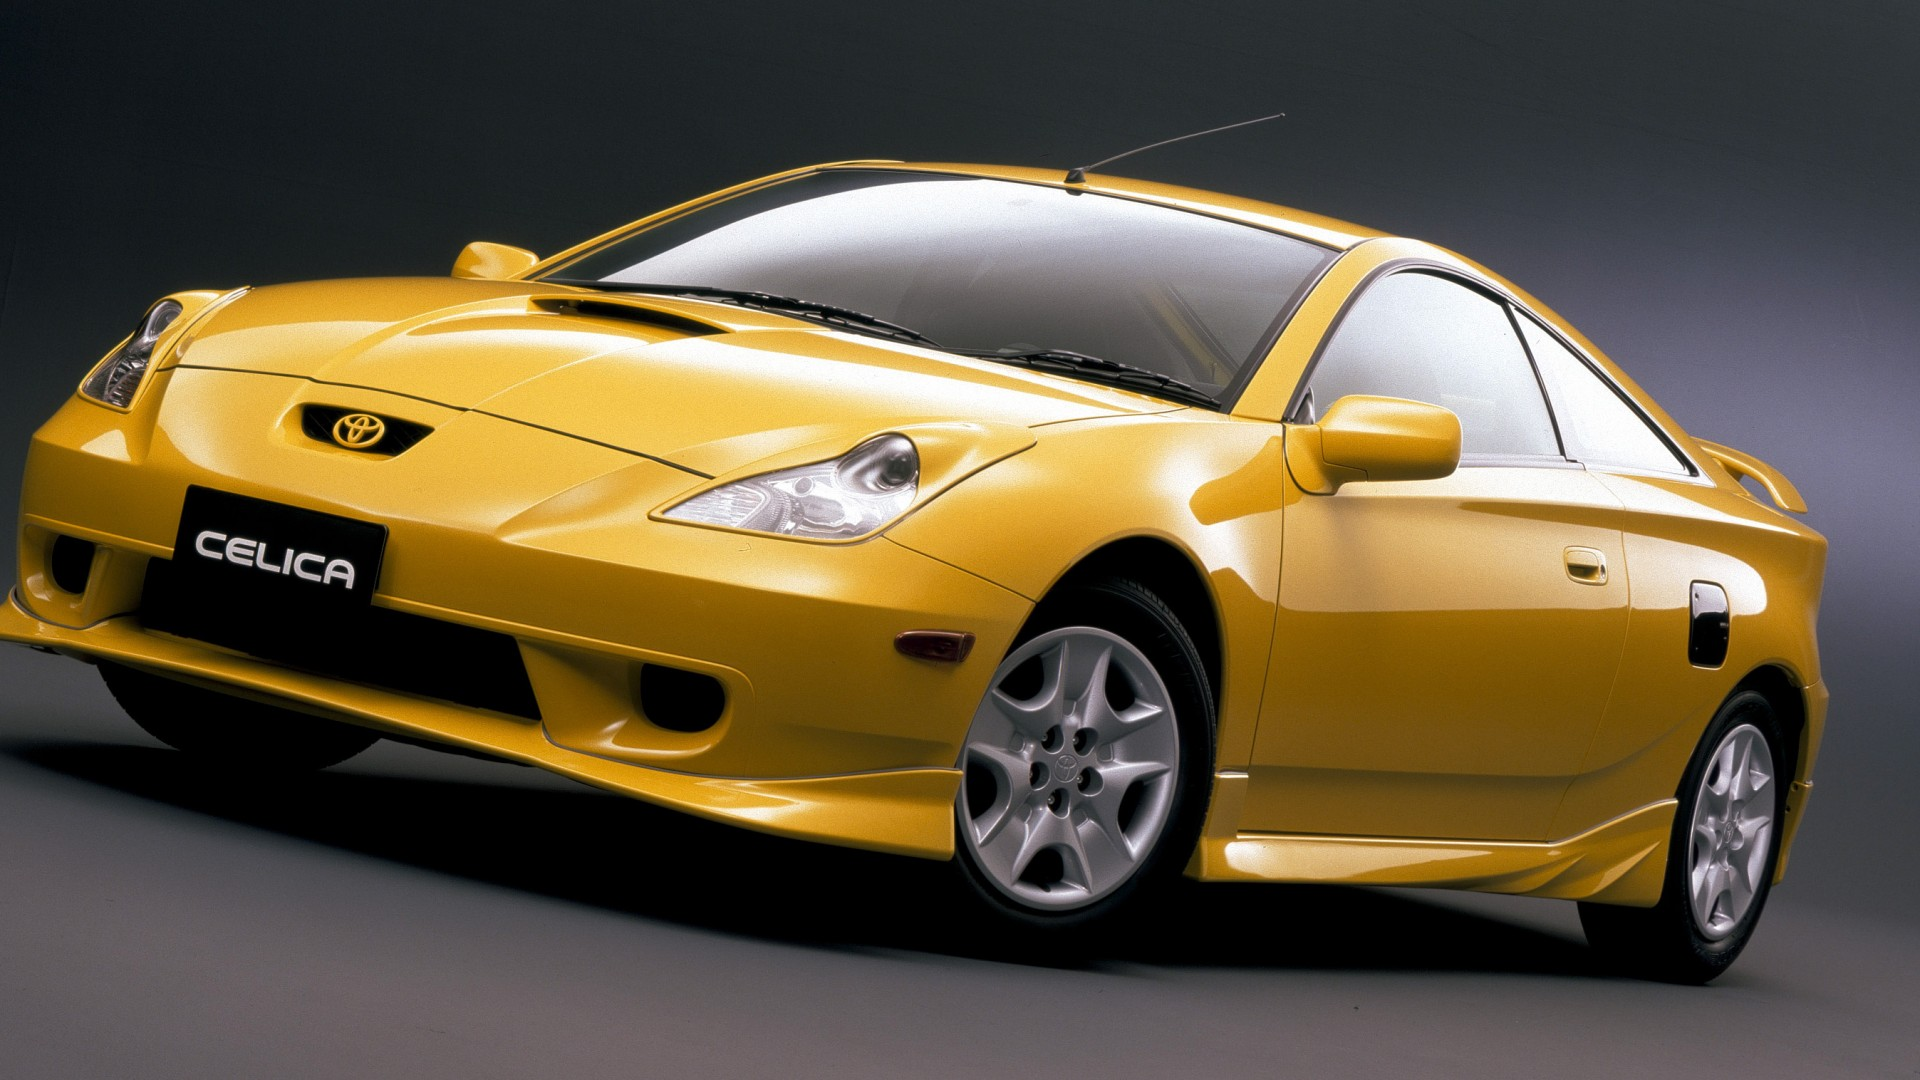 Supra Iphone Wallpaper Golden Toyota Celica In Stunning Hd Hd Wallpapers